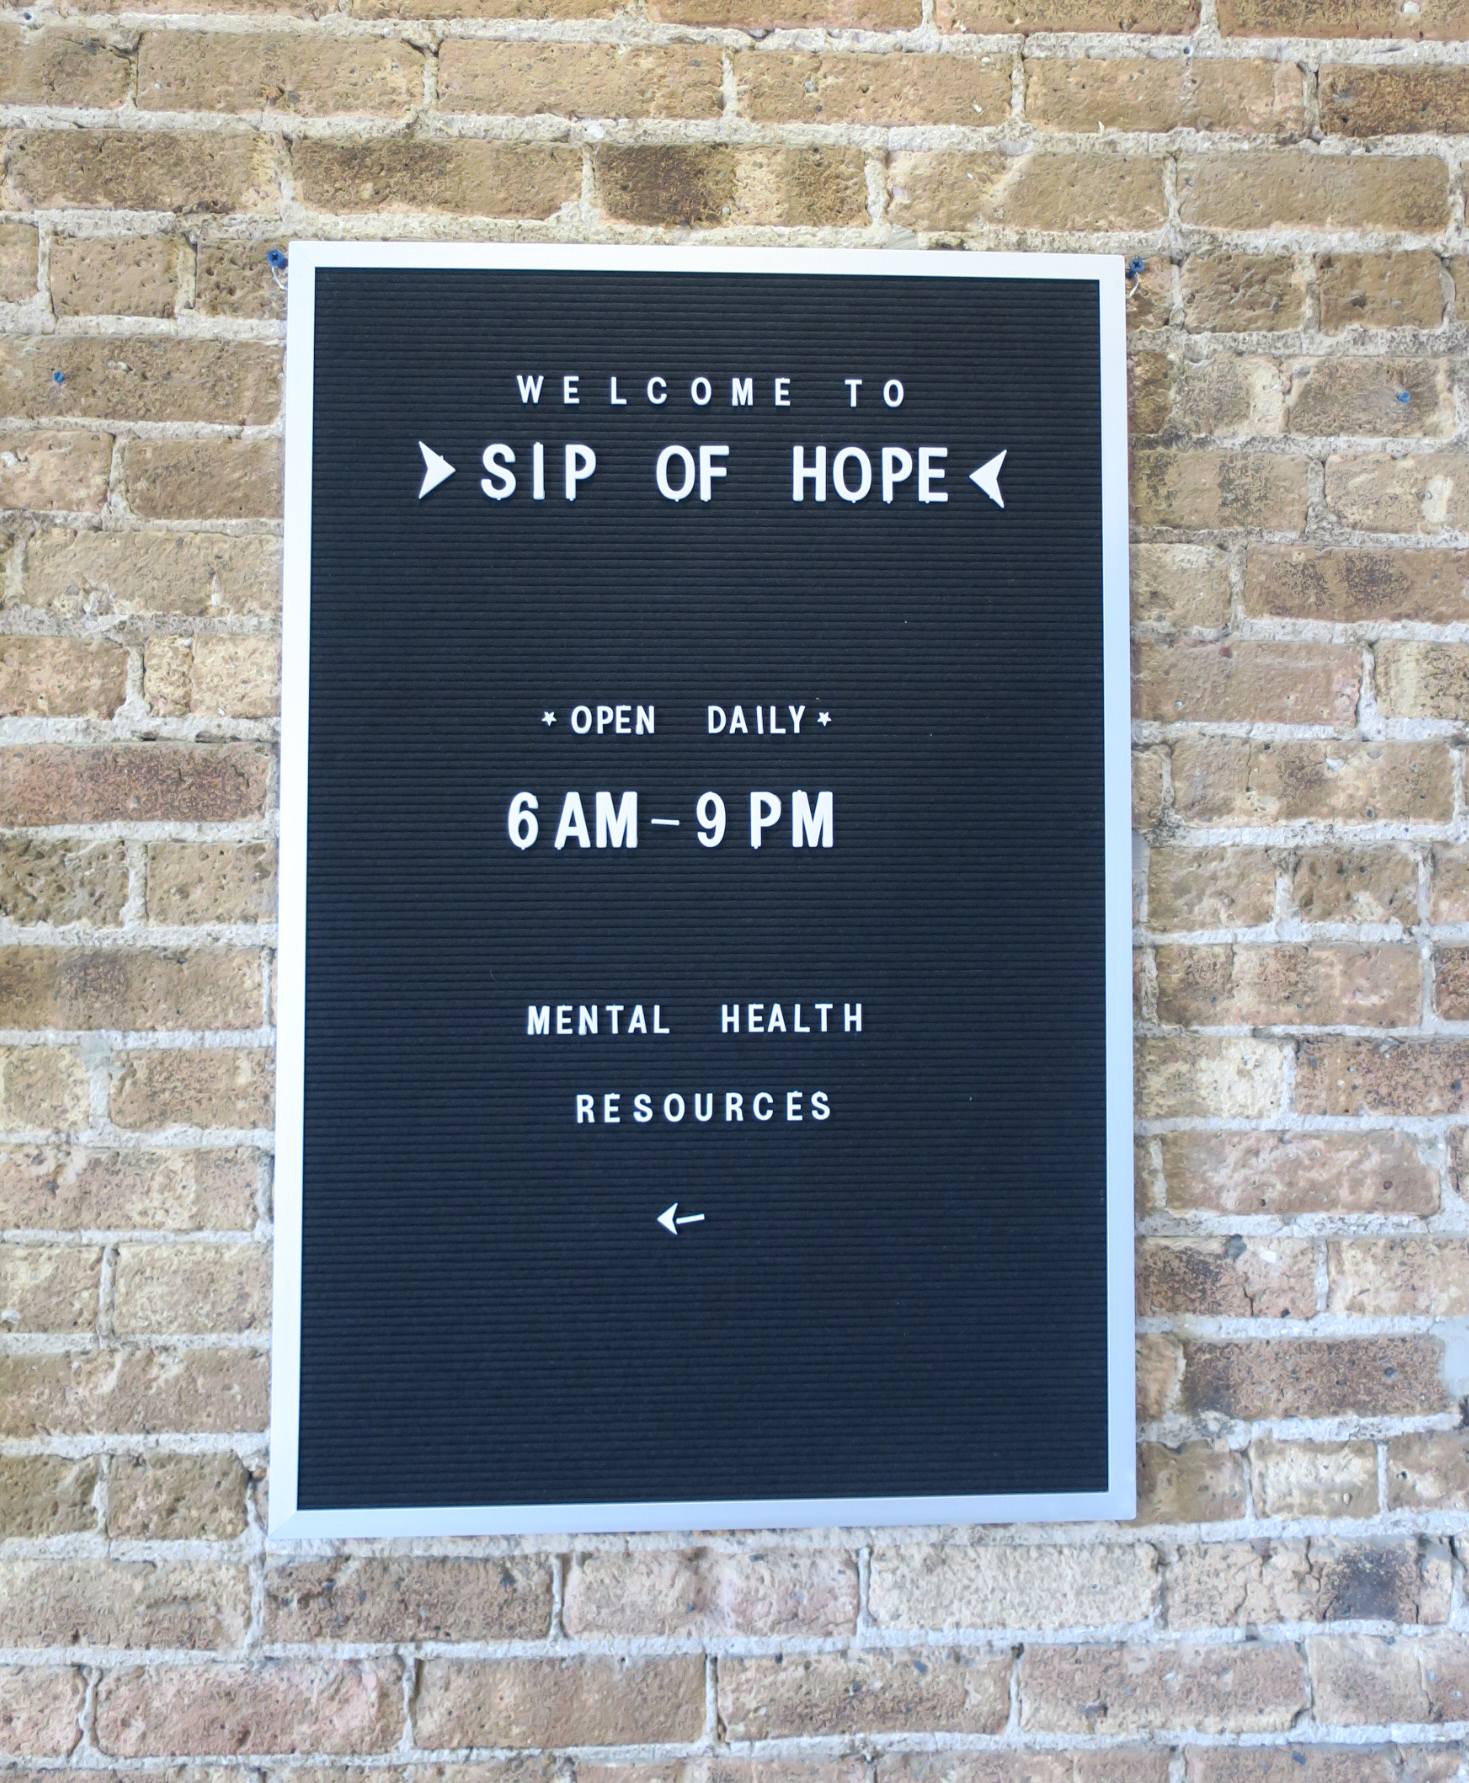 Sip of Hope - sign pointing to mental health awareness pamphlets and resources.